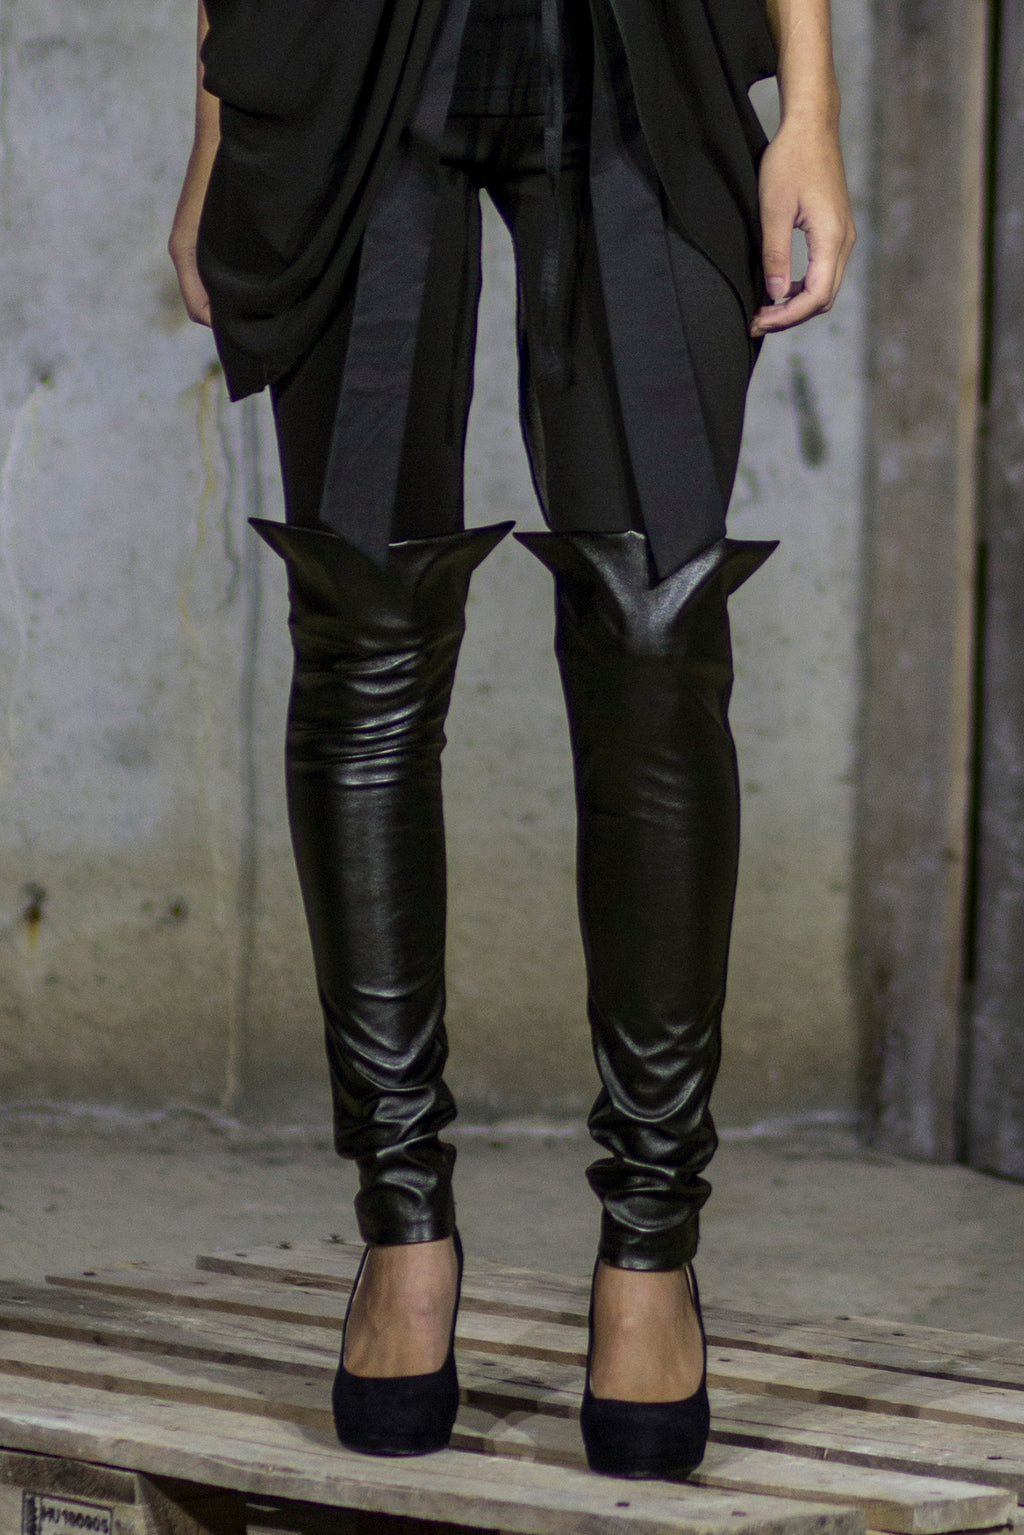 Black leather boot leggings